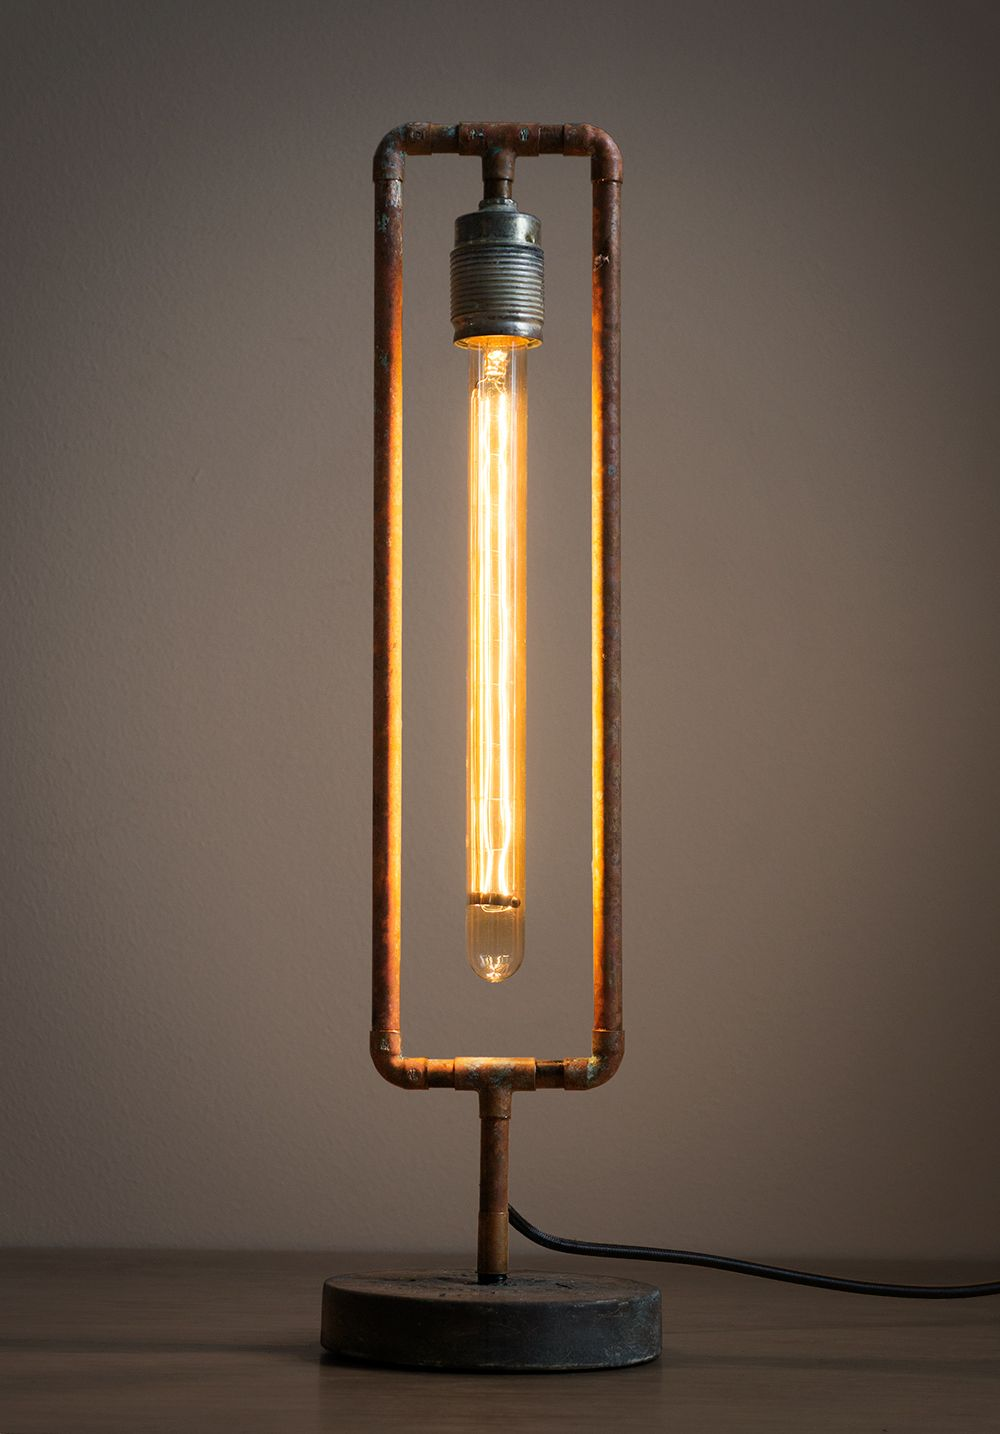 This Lamp Is Build From Brass Pipes And A 30 Cm Long Light